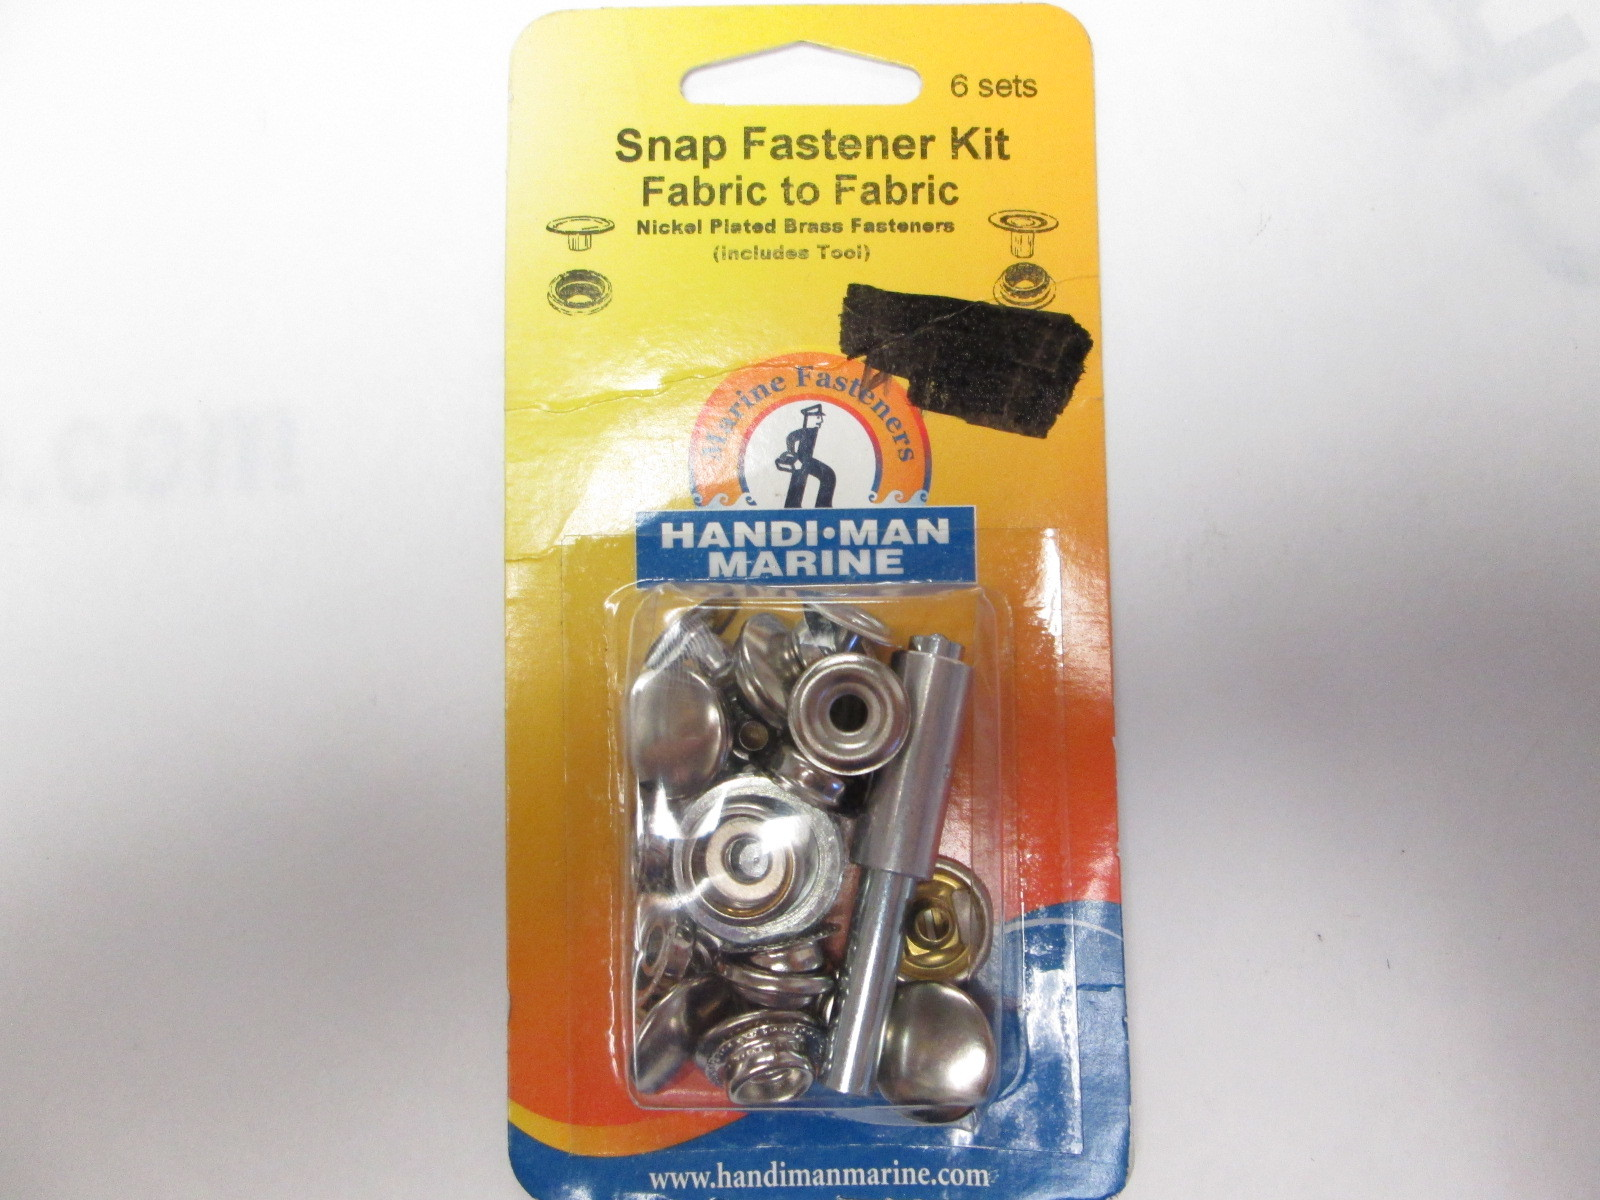 561012 Handi-Man Marine Boat Cover Snap Fastener Kit for Fabric to Fabric